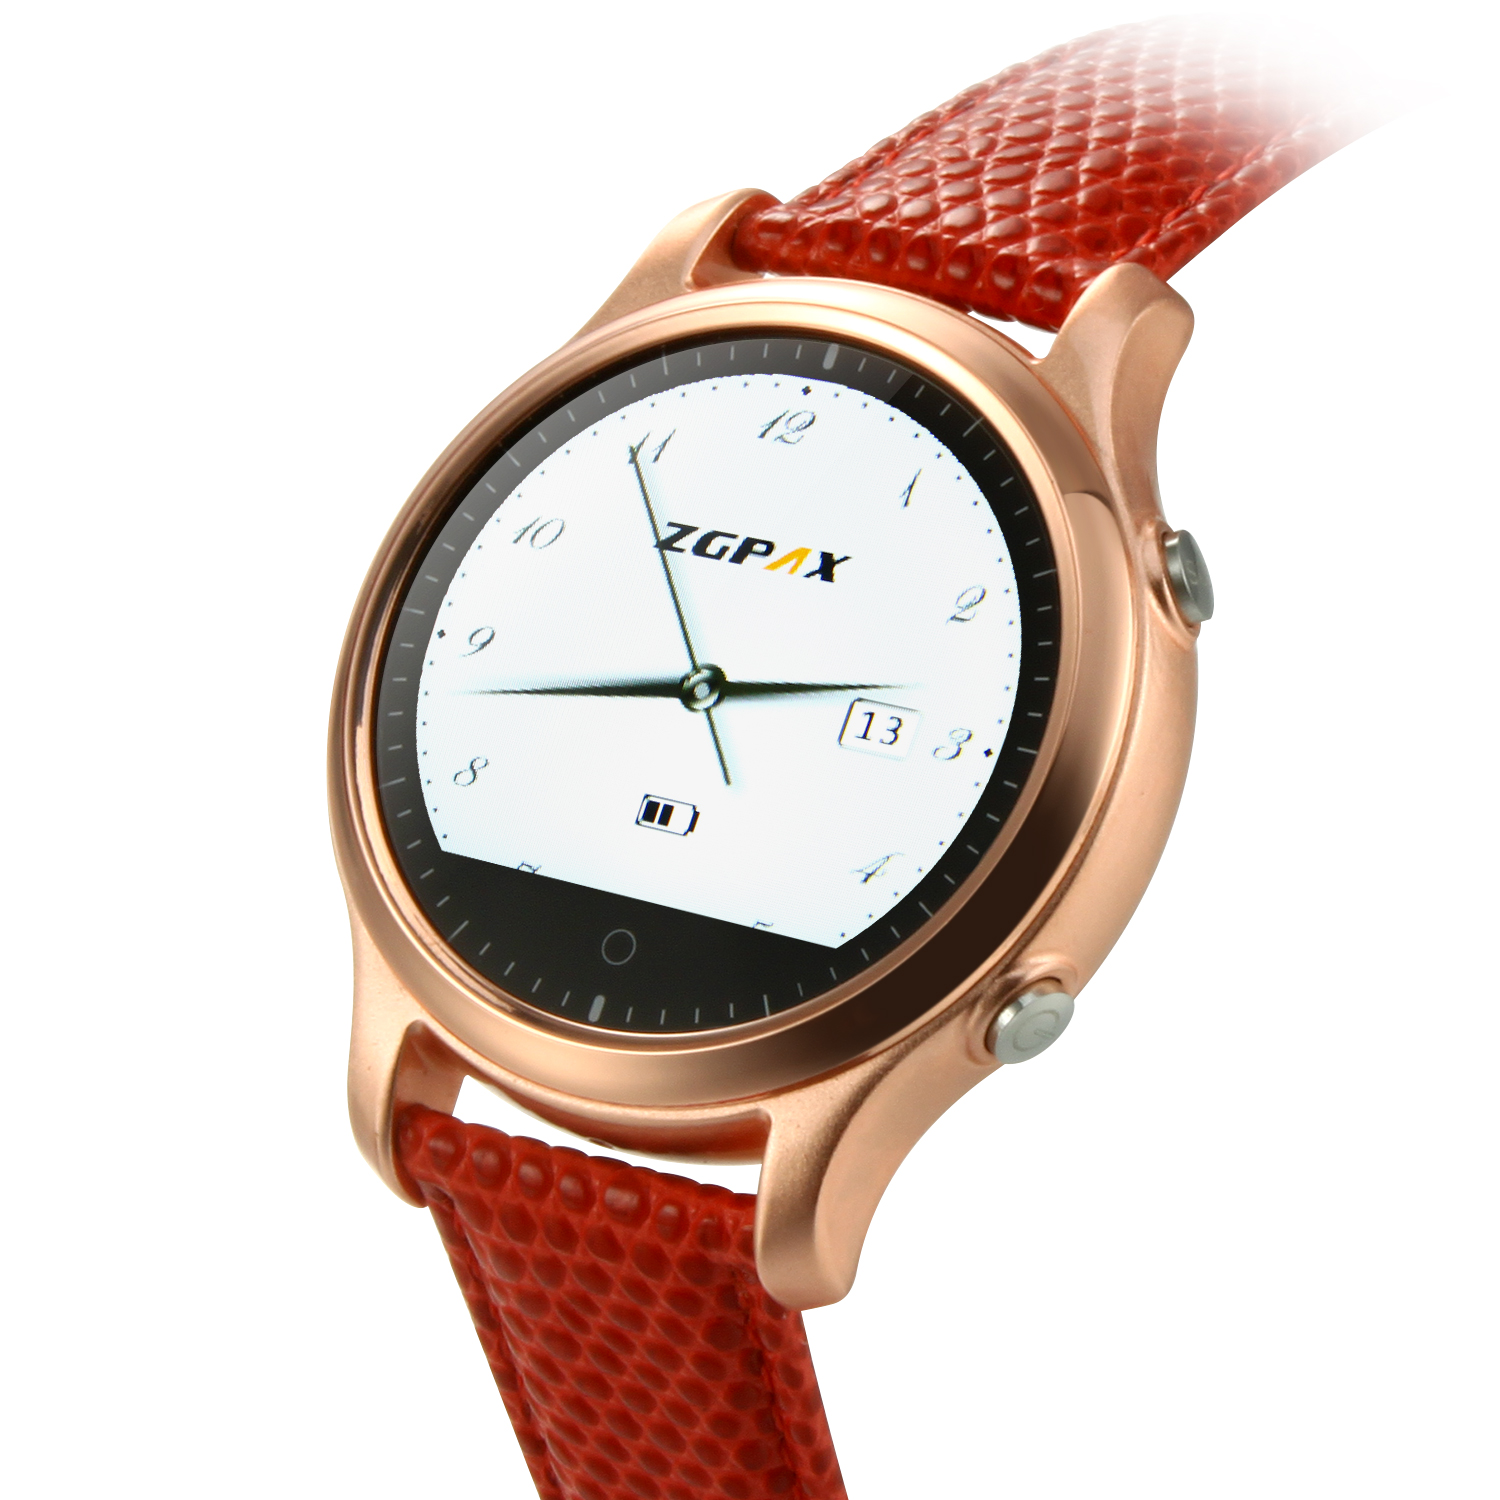 ZGPAX S360 Smart Bluetooth Watch 1.22 Inch SOS Button for IOS Android Smartphone Red